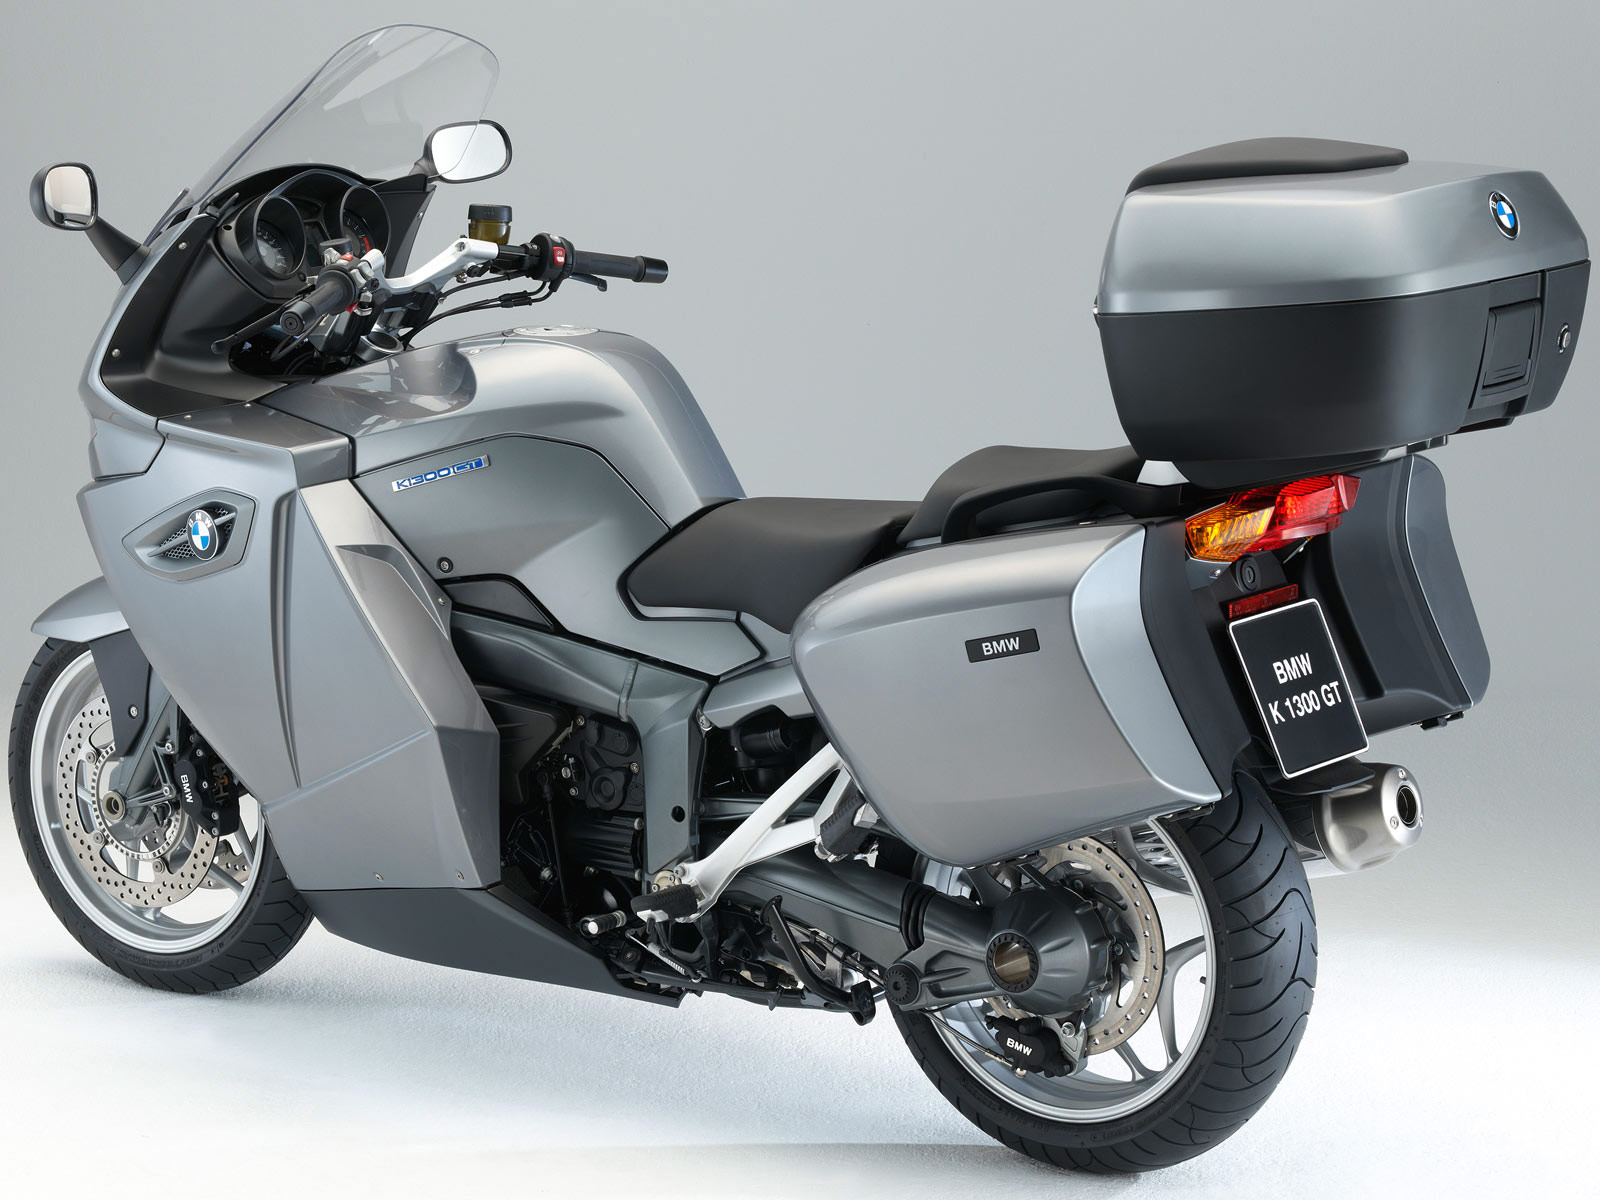 2010 bmw k 1300 gt motorcycle desktop wallpaper. Black Bedroom Furniture Sets. Home Design Ideas